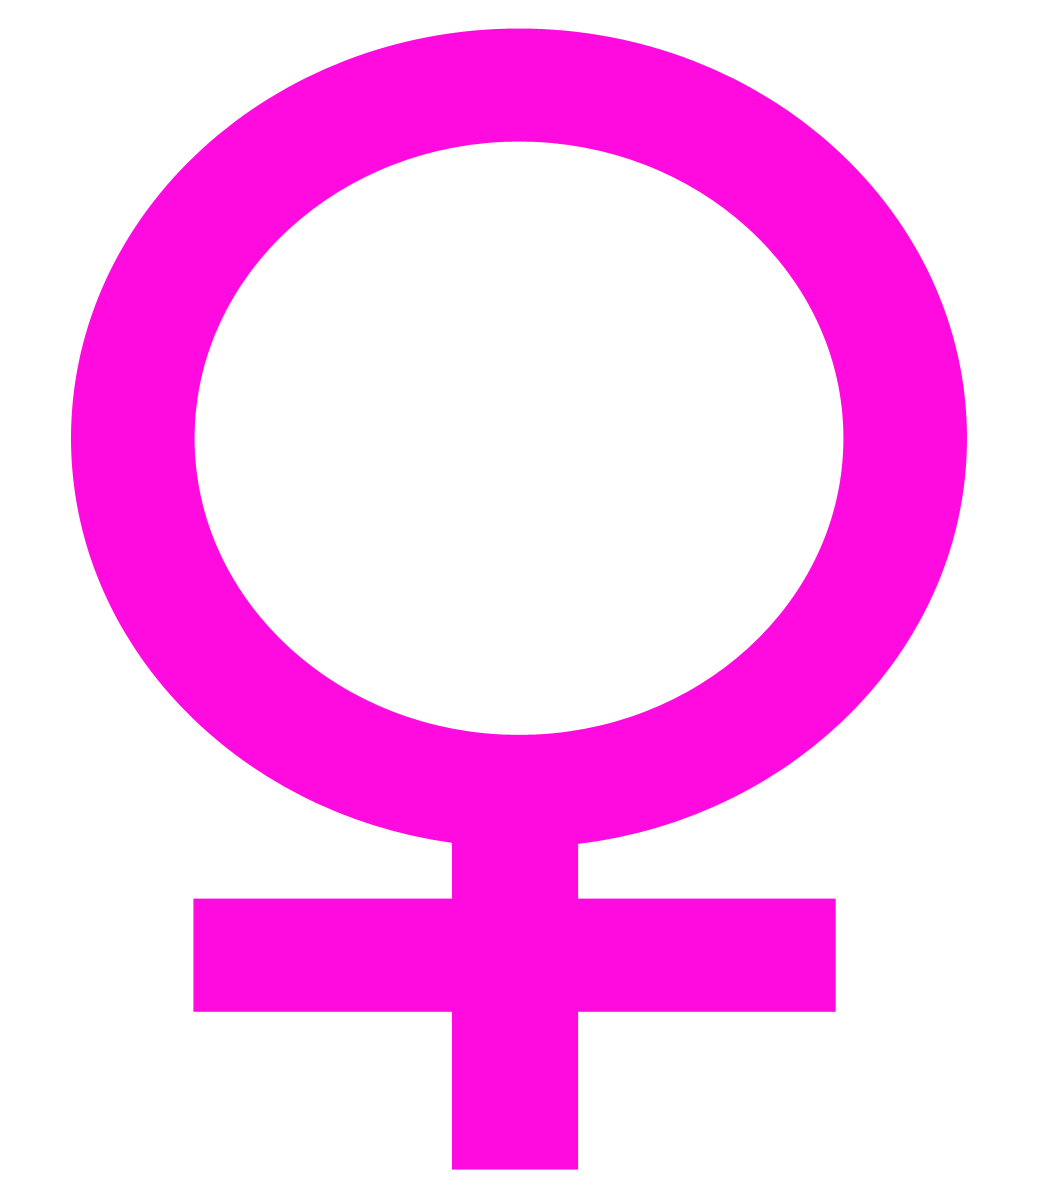 26 The Female Symbol Free Cliparts That You Can Download To You